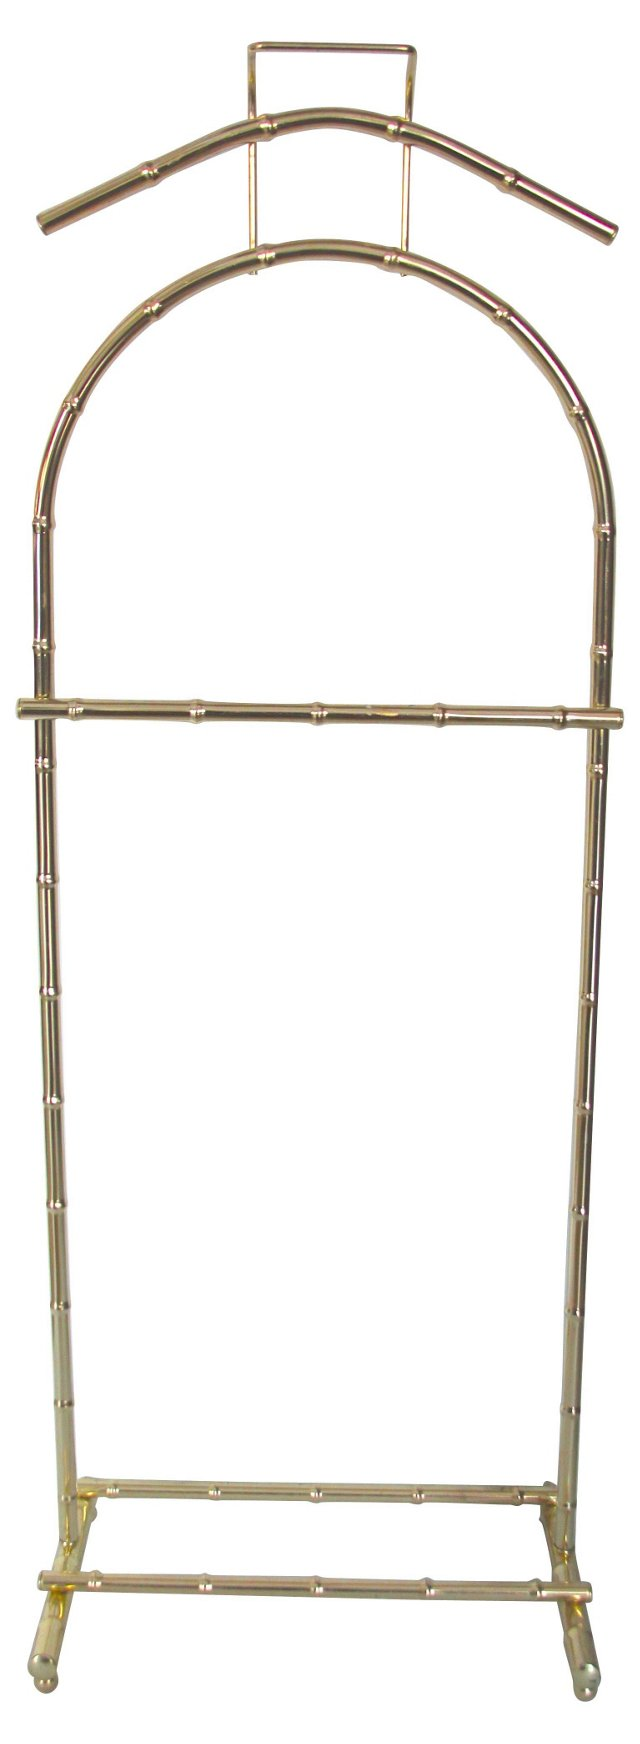 Brass-Plated Bamboo-Style Valet Stand